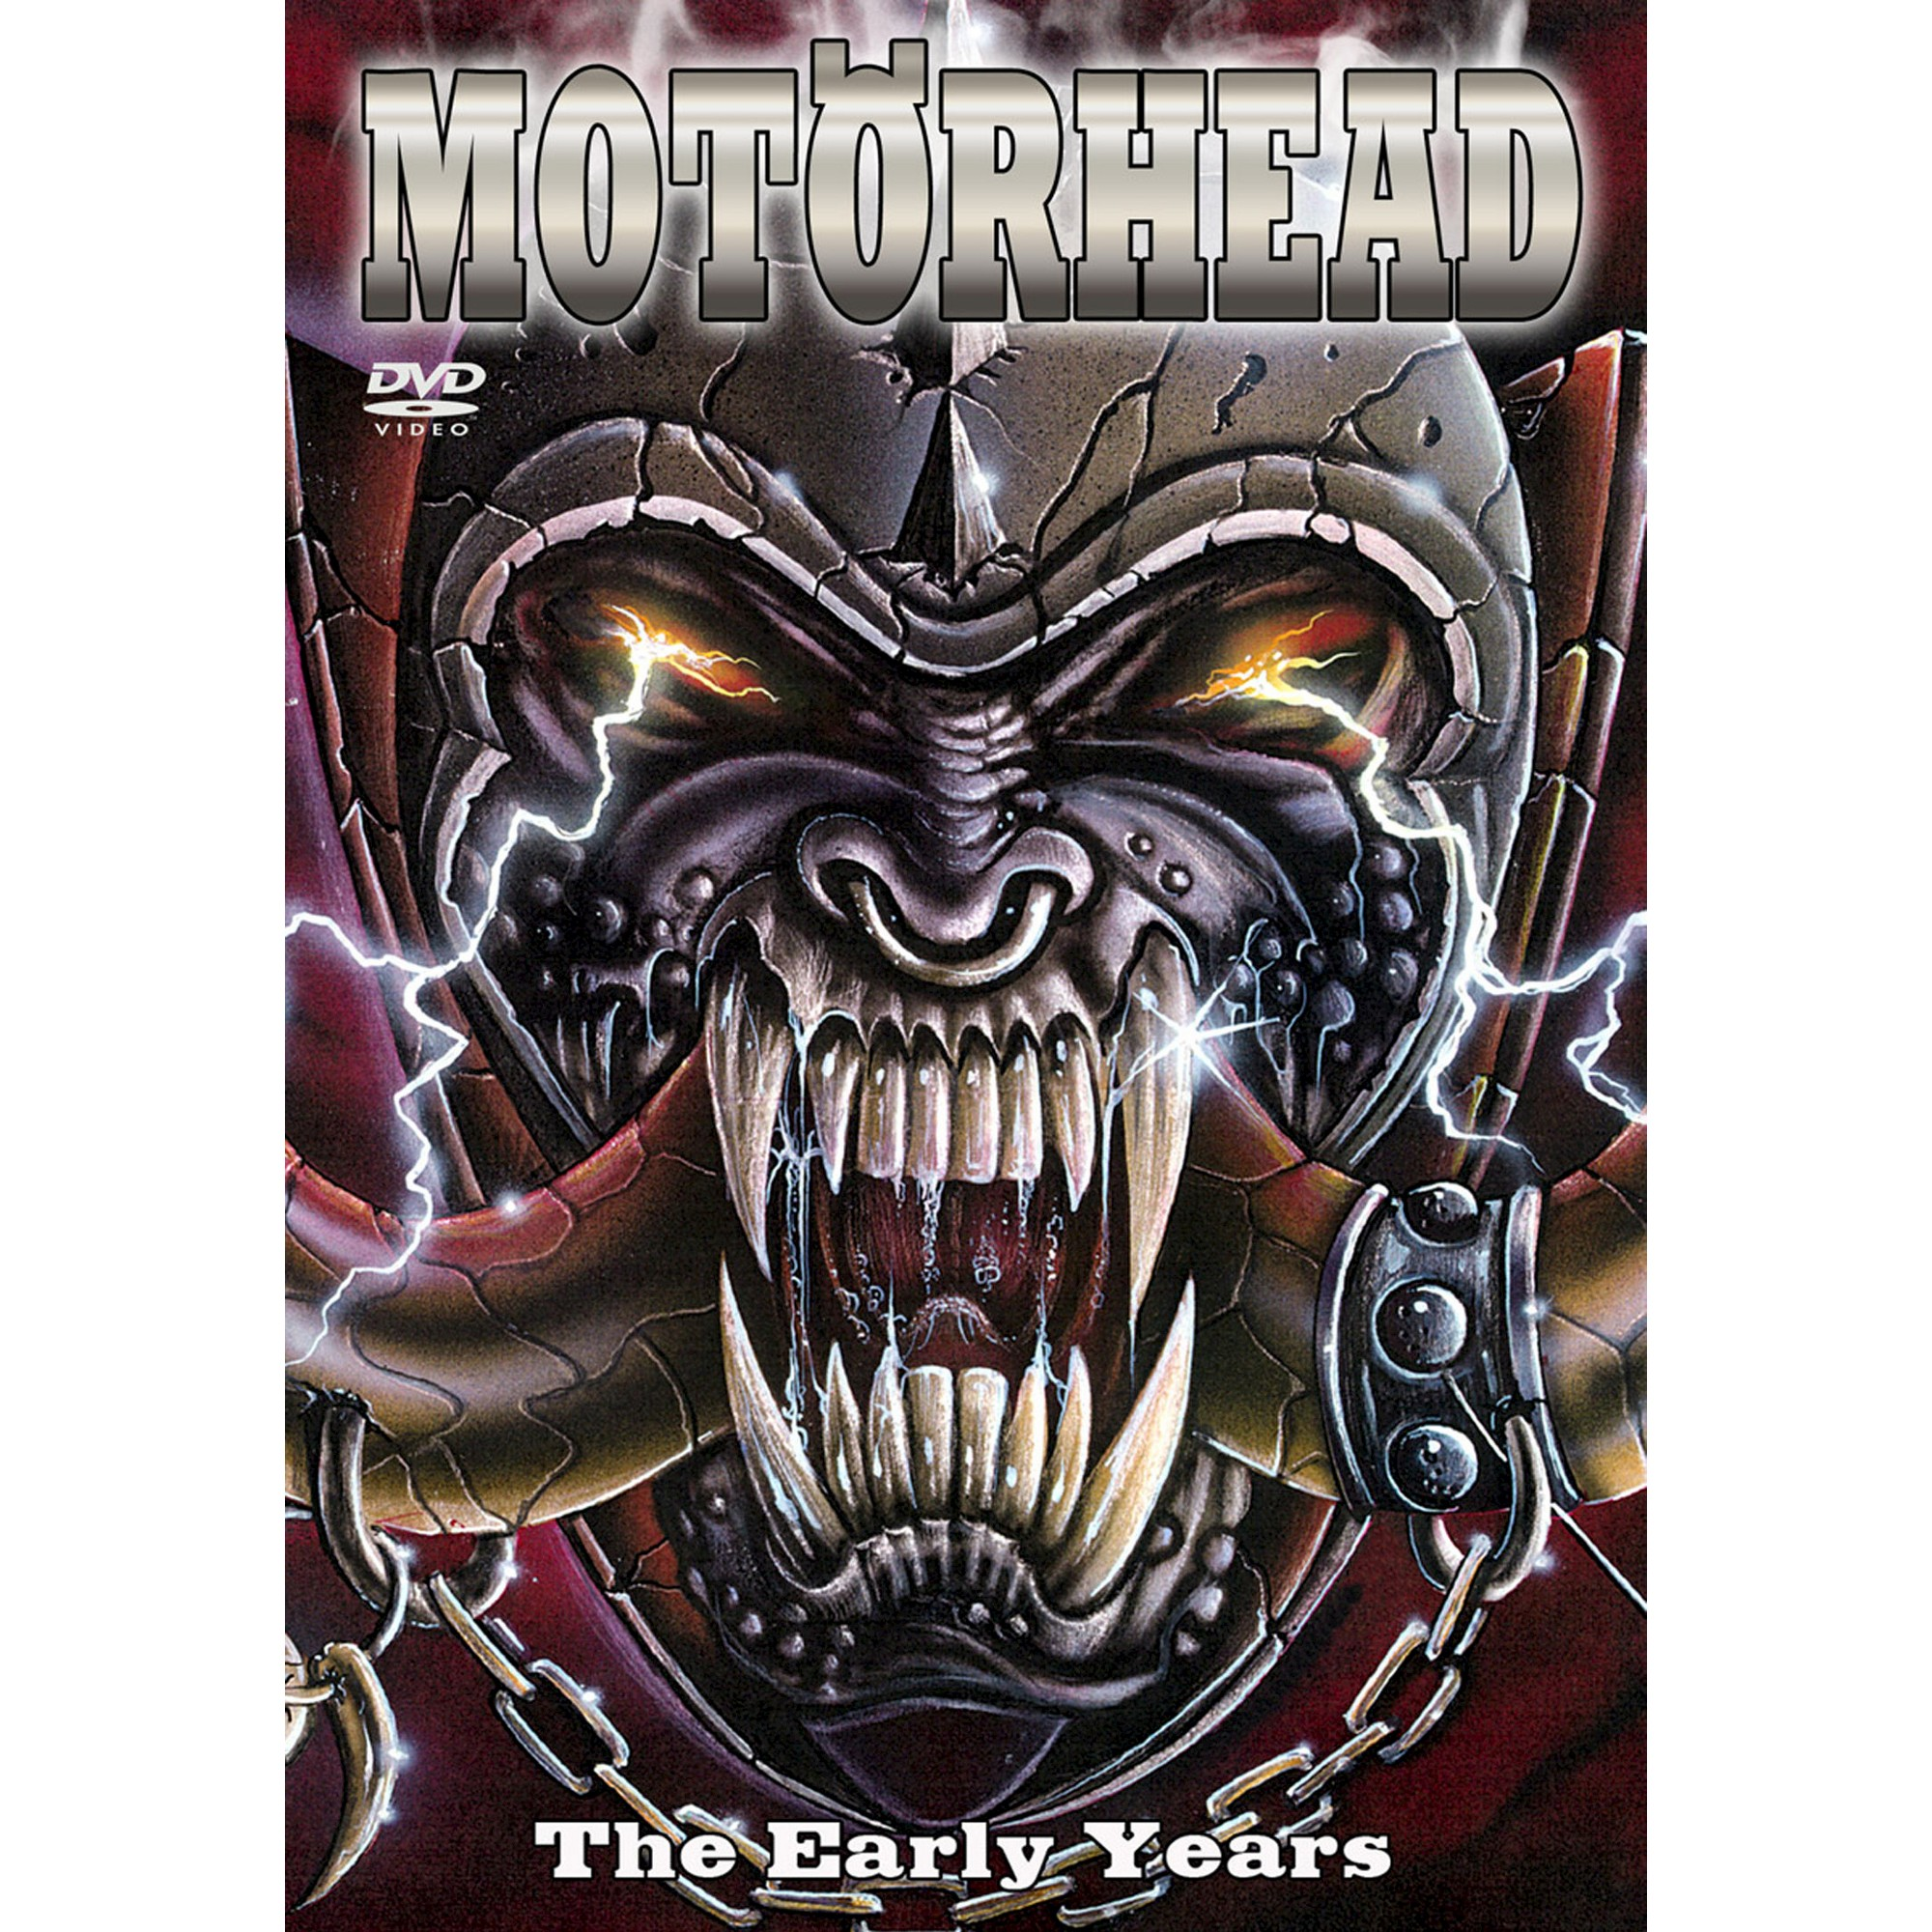 Early years:Motorhead (Dvd)